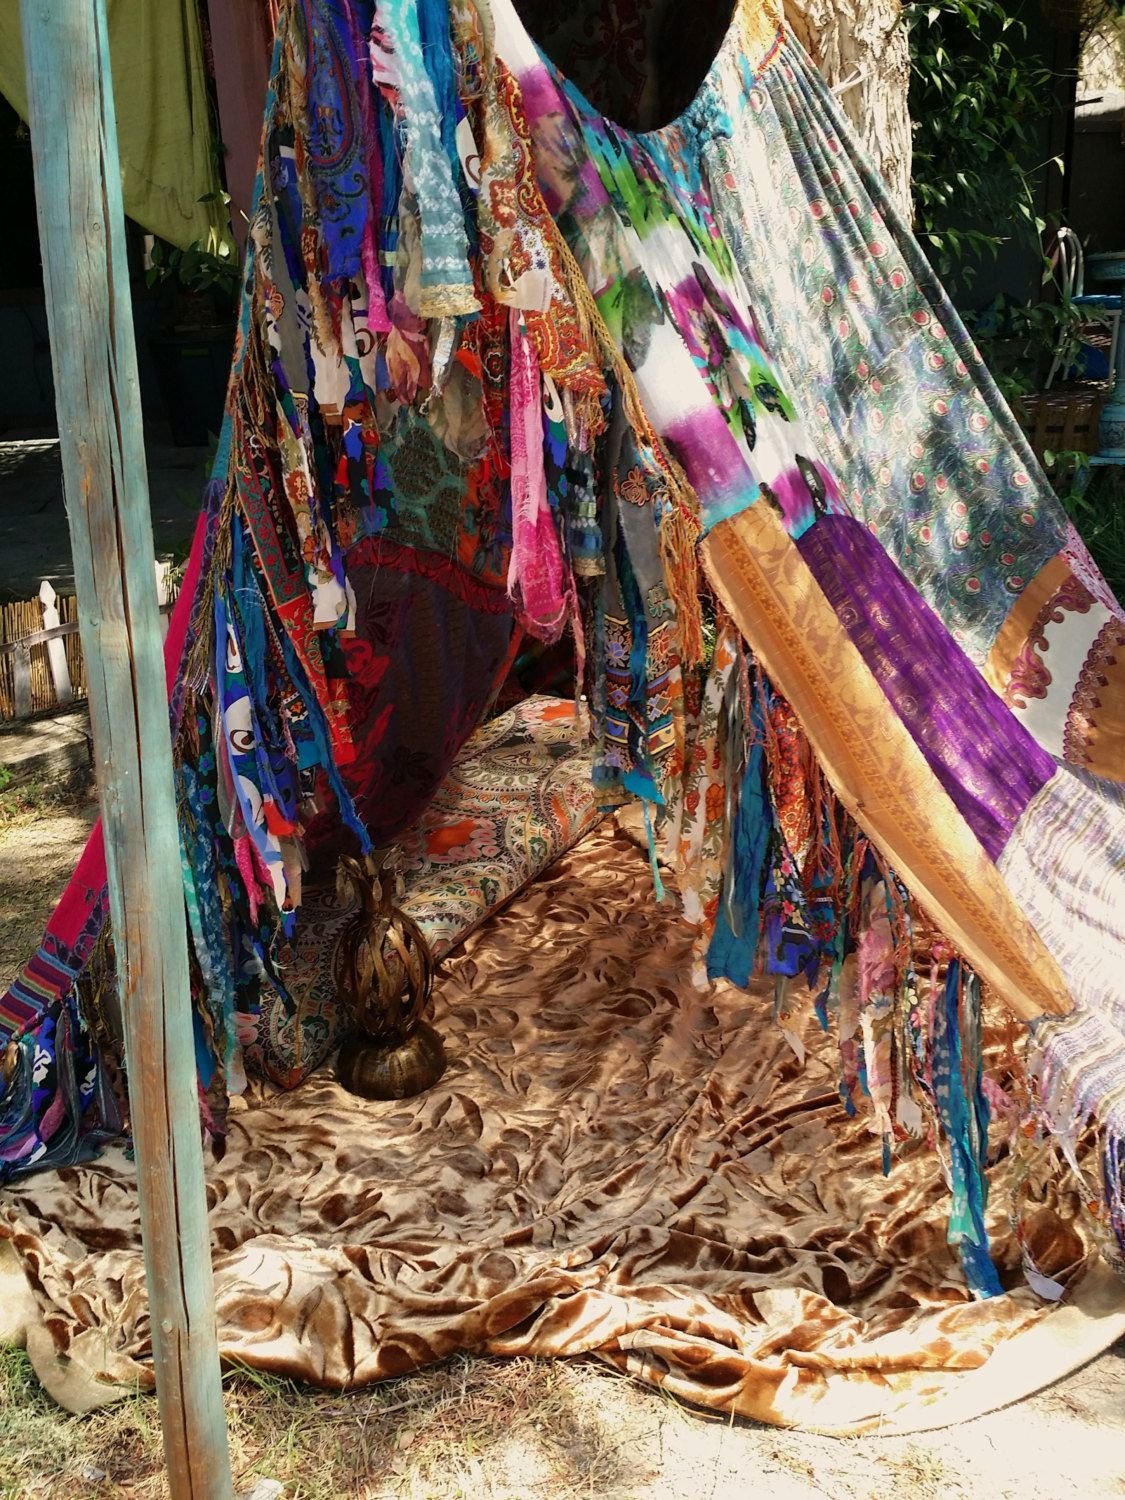 Bed canopy gypsy - Boho Meditation Vintage Gypsy Patchwork Fringe Tent Bed Canopy Wedding Teepee Photo Prop Play Tent Bohemian